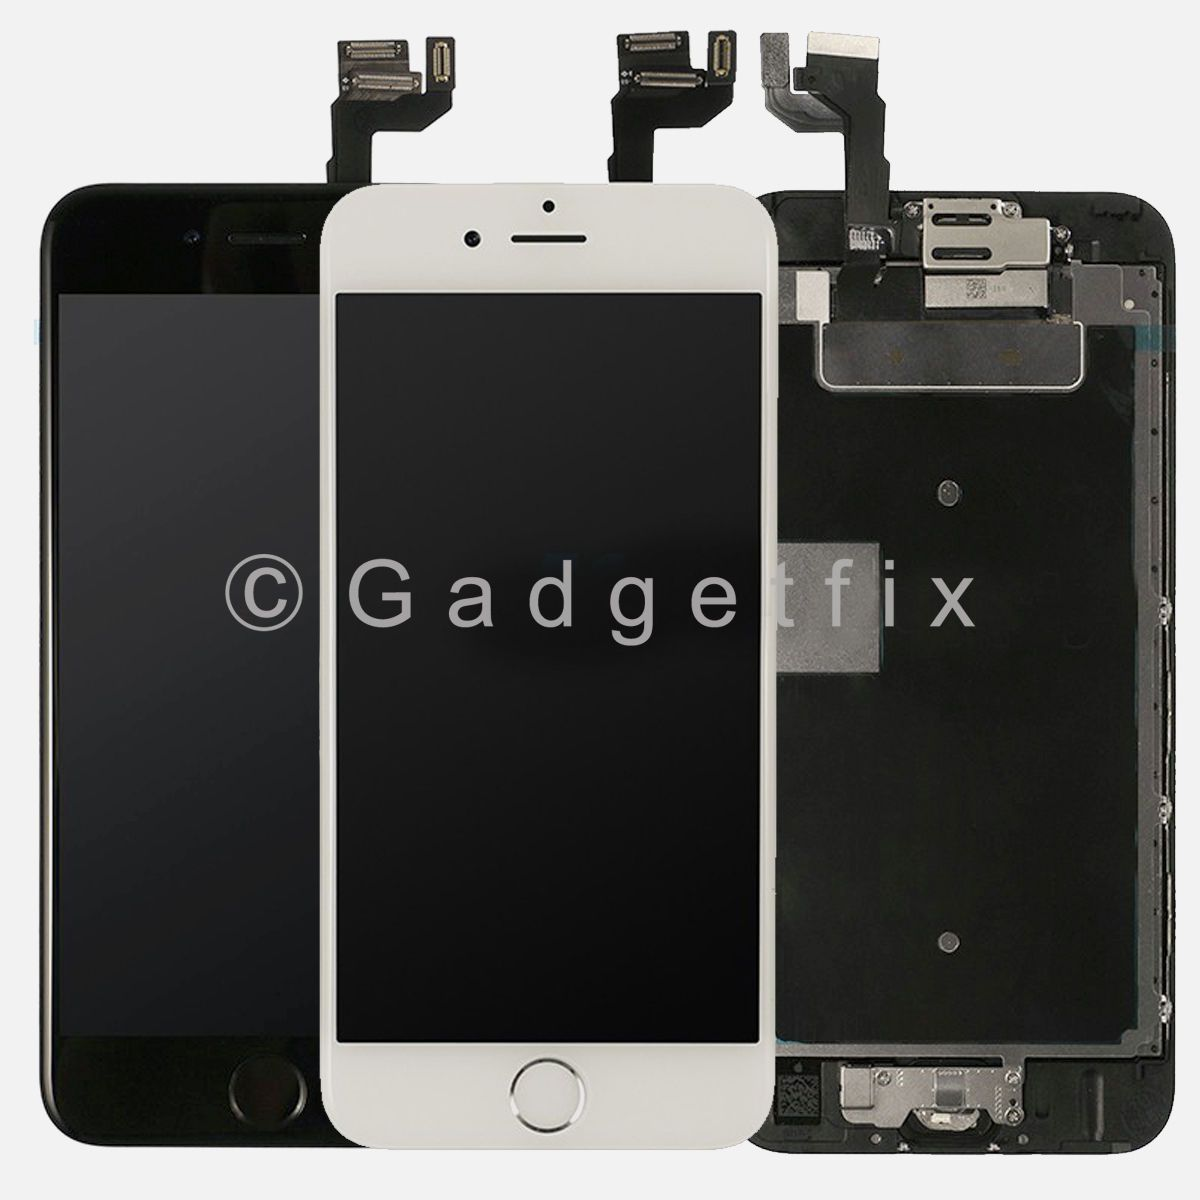 Lcd Screen Touch Screen Digitizer Replacement For Iphone 5 5c 5s 6 6s 7 8 Plus Iphone 5 Touch Screen Iphone